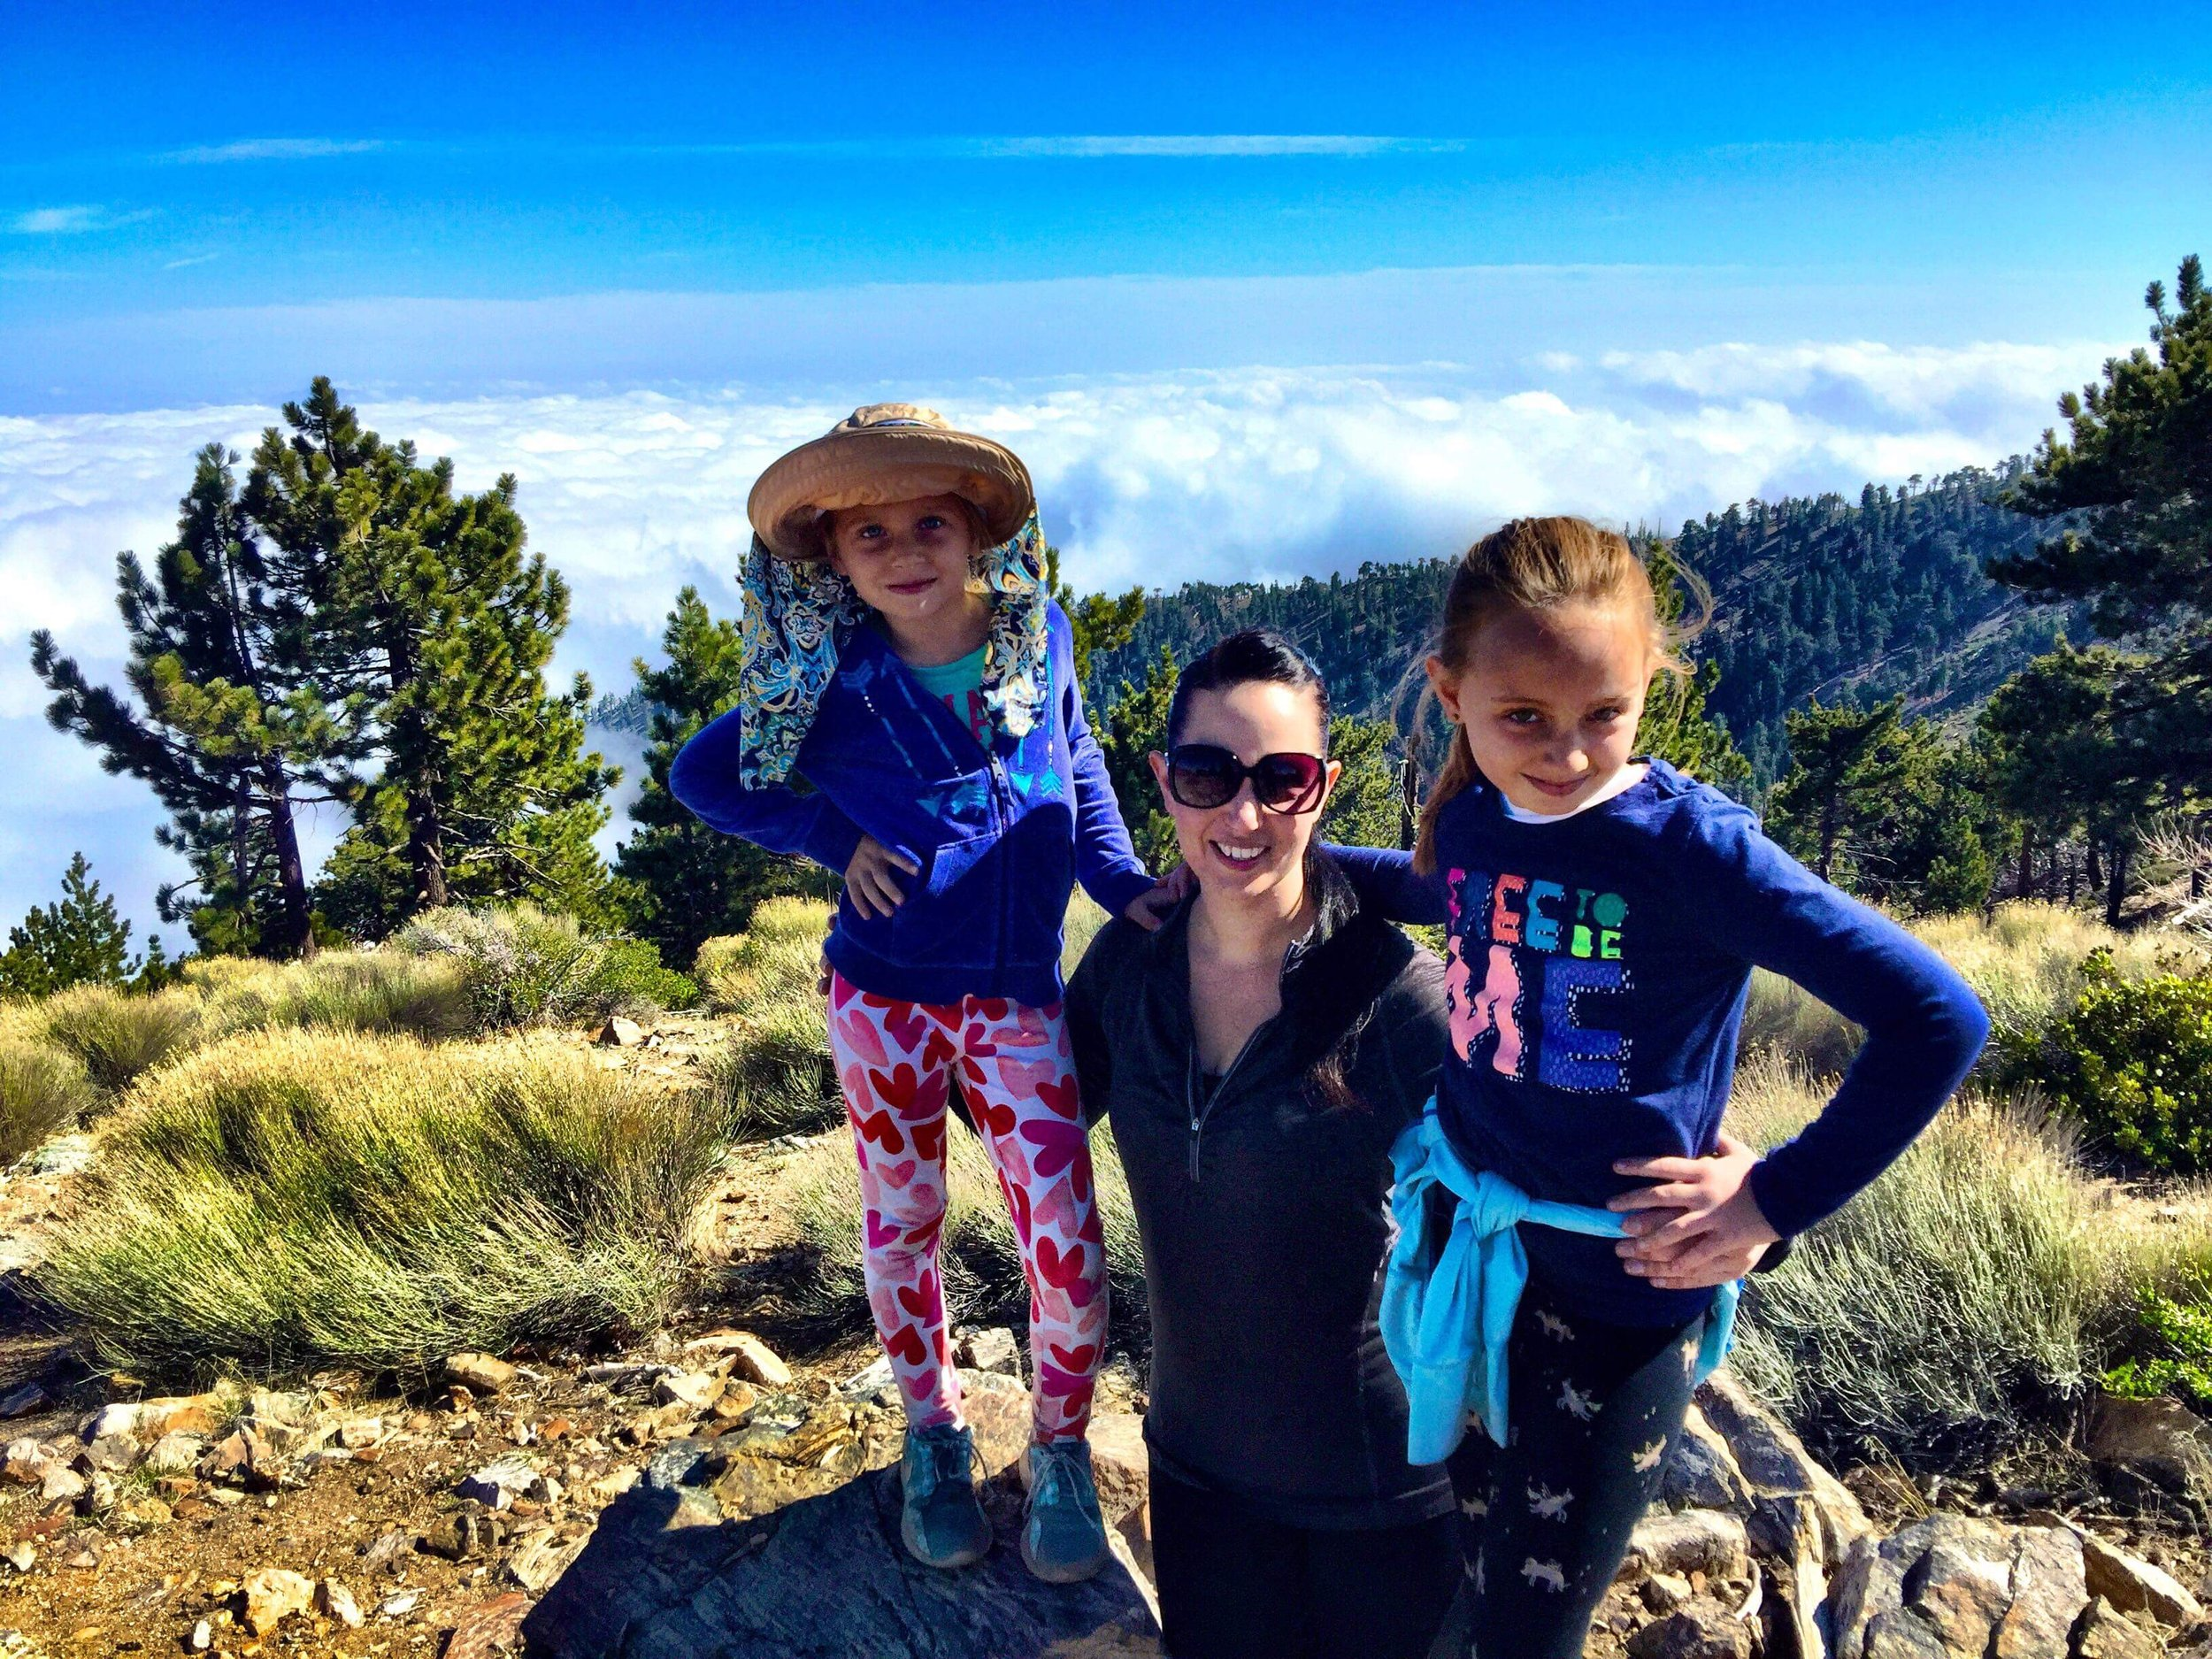 By Girls Who Hike Inland Empire member Alicia Felton,